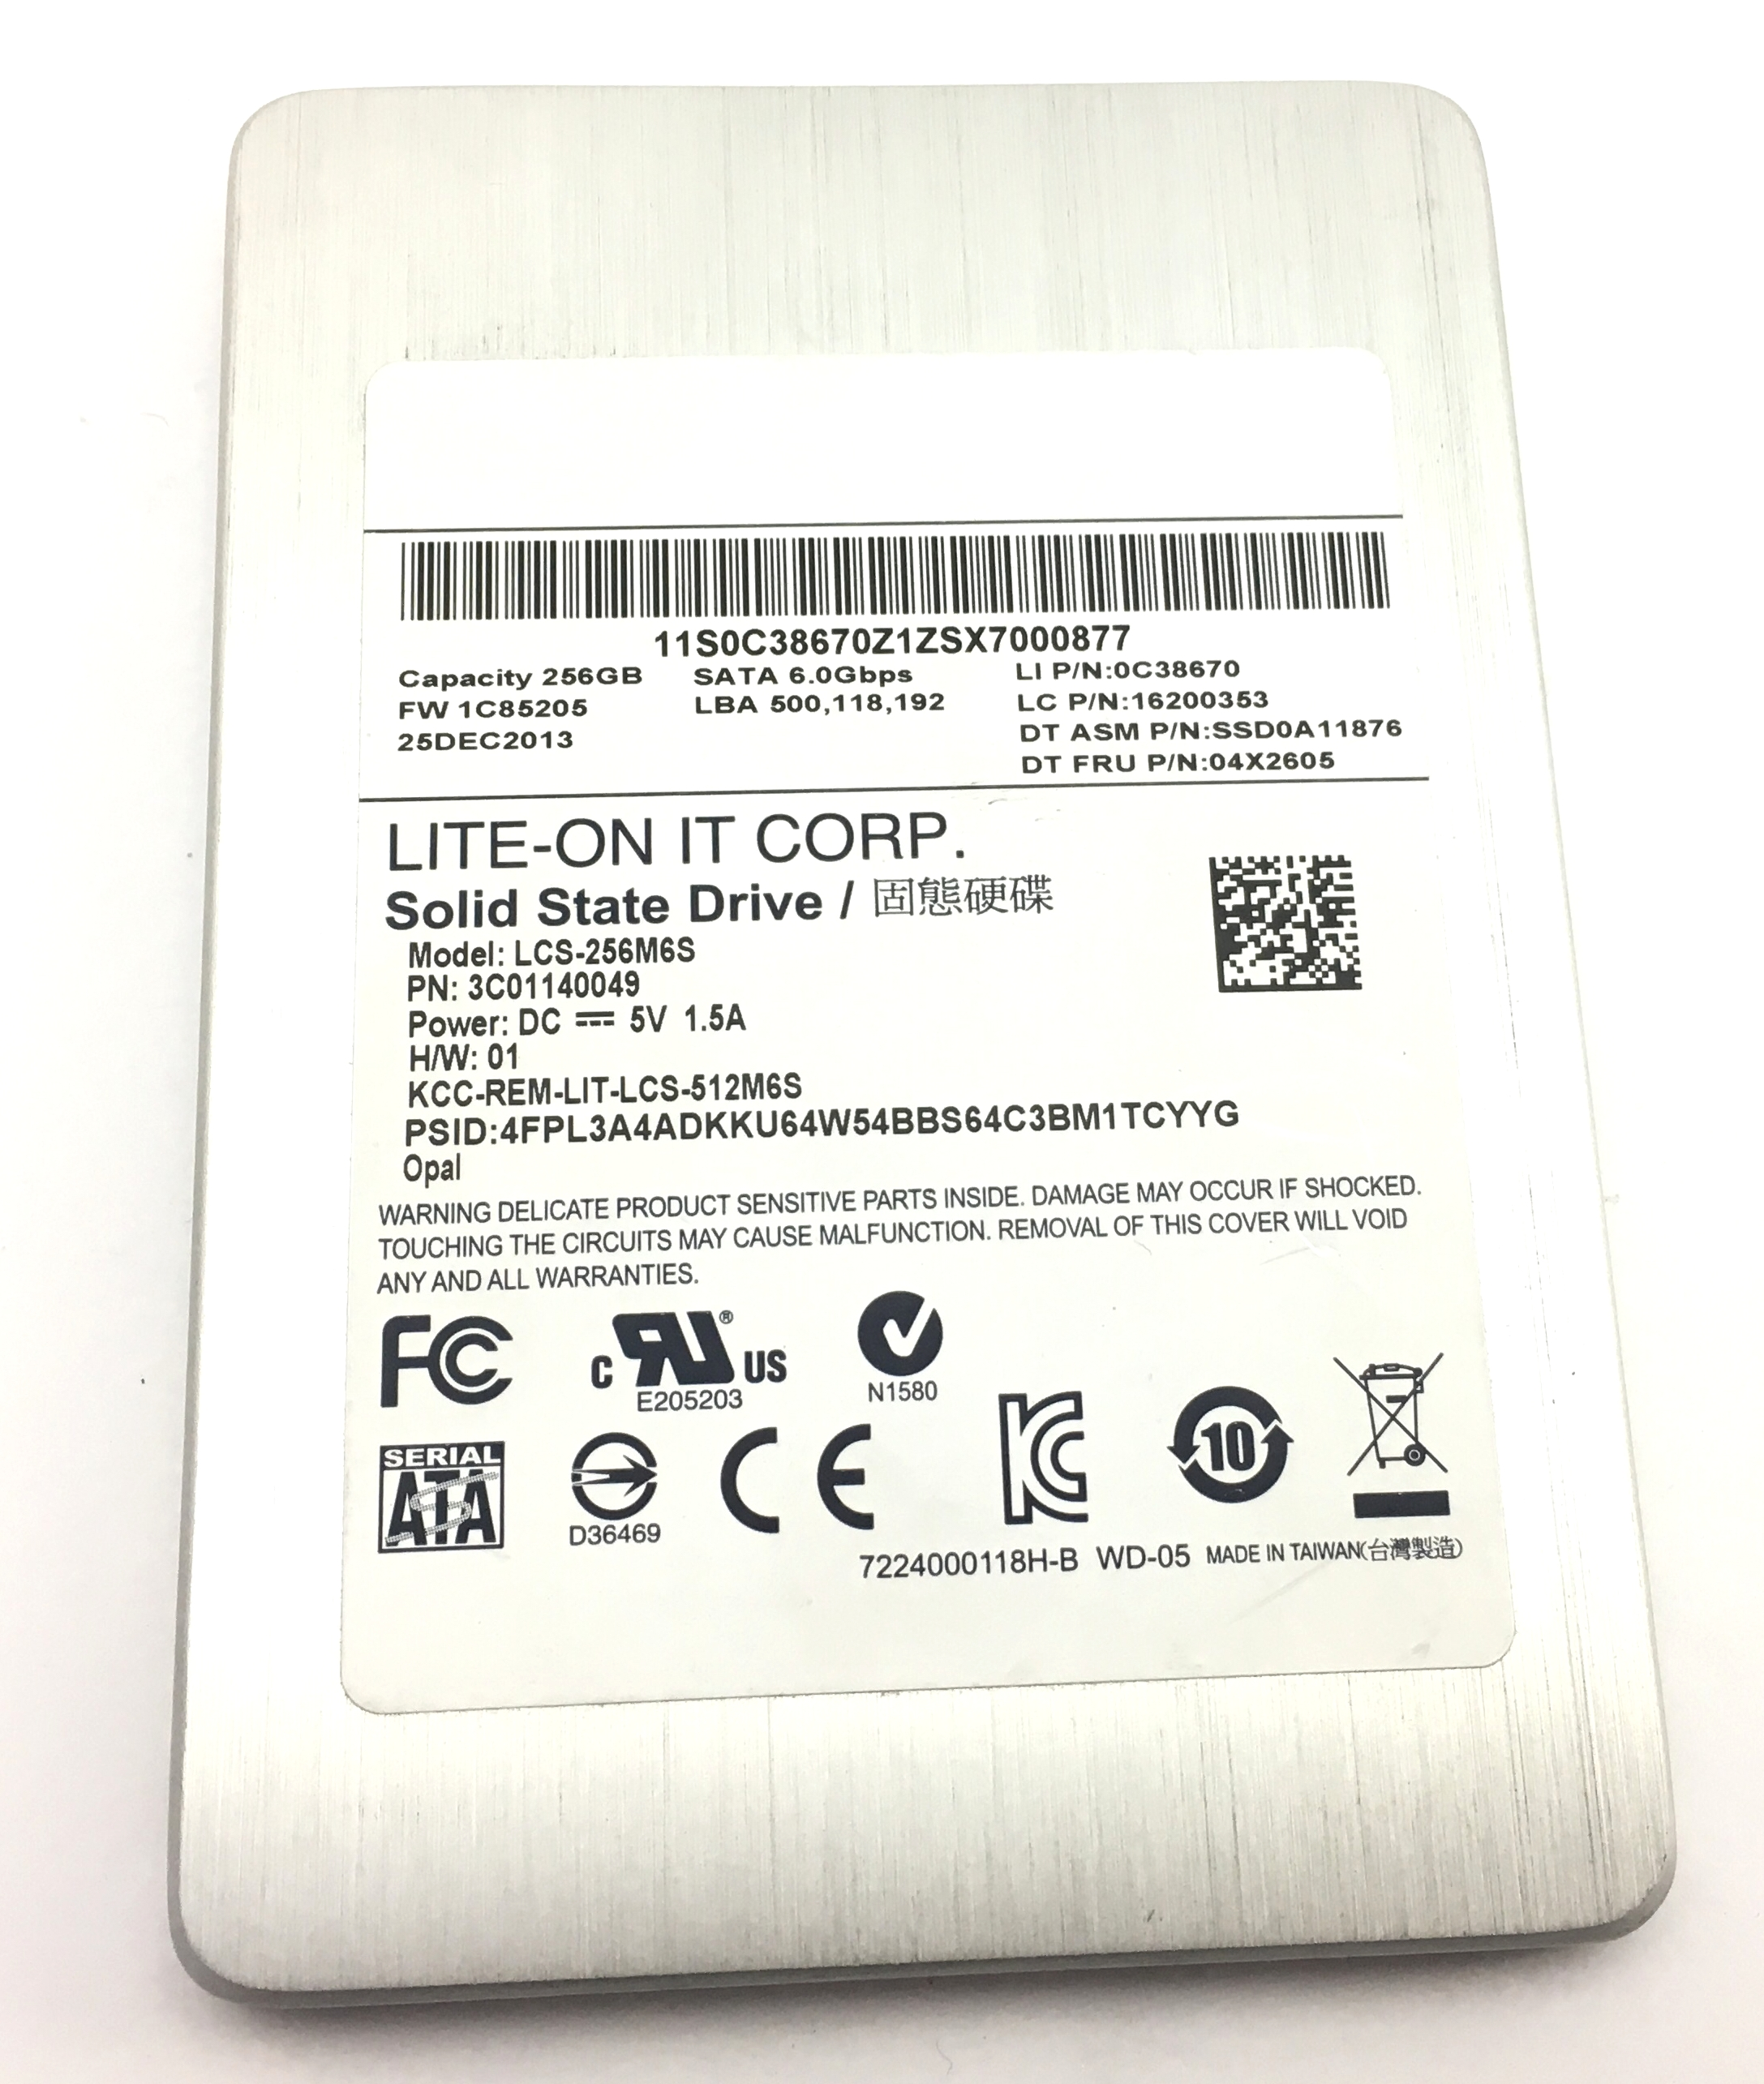 Lenovo Lite-On Lcs-256M6S 256GB 6Gbps SATA 2.5'' SSD Solid State Drive (04X2605)